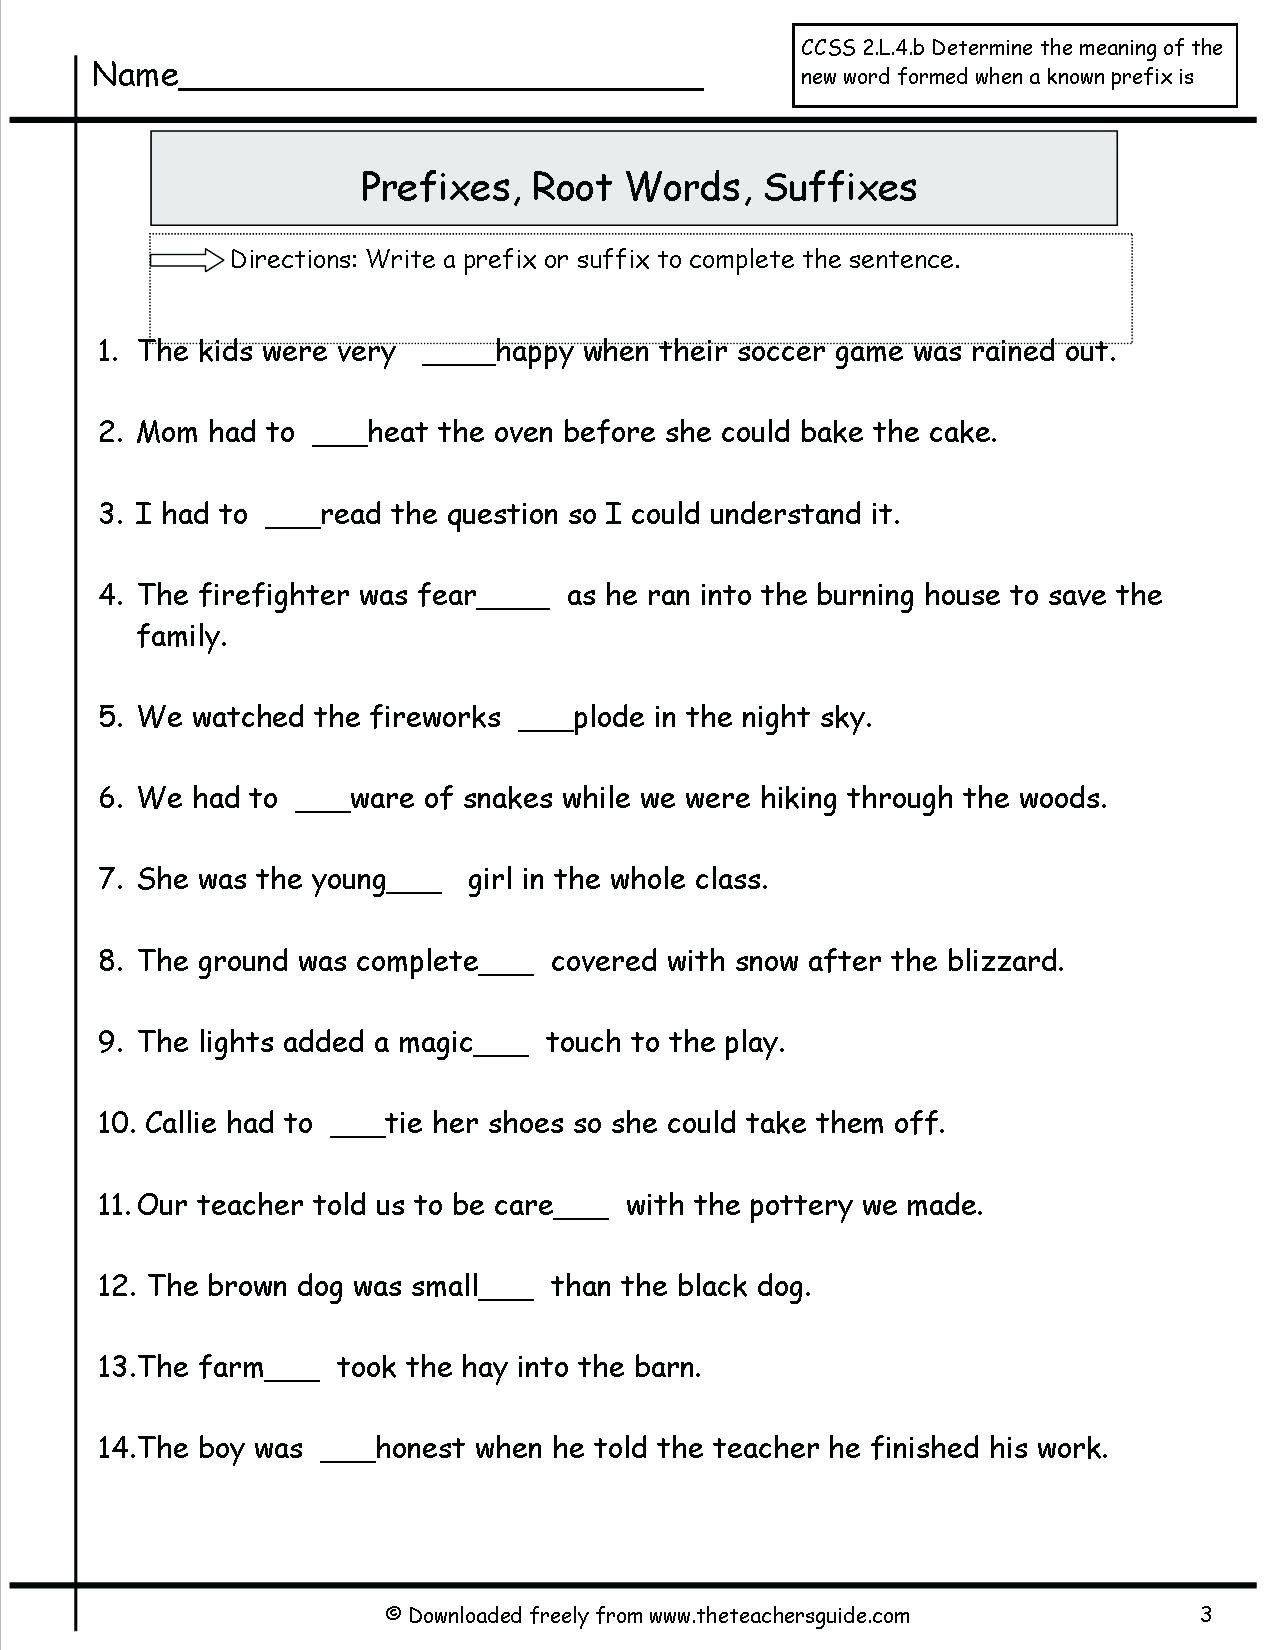 medium resolution of Suffix Worksheets for 4th Grade 3rd Grade Prefixes and Suffixes Worksheets  Root Words   Suffixes worksheets